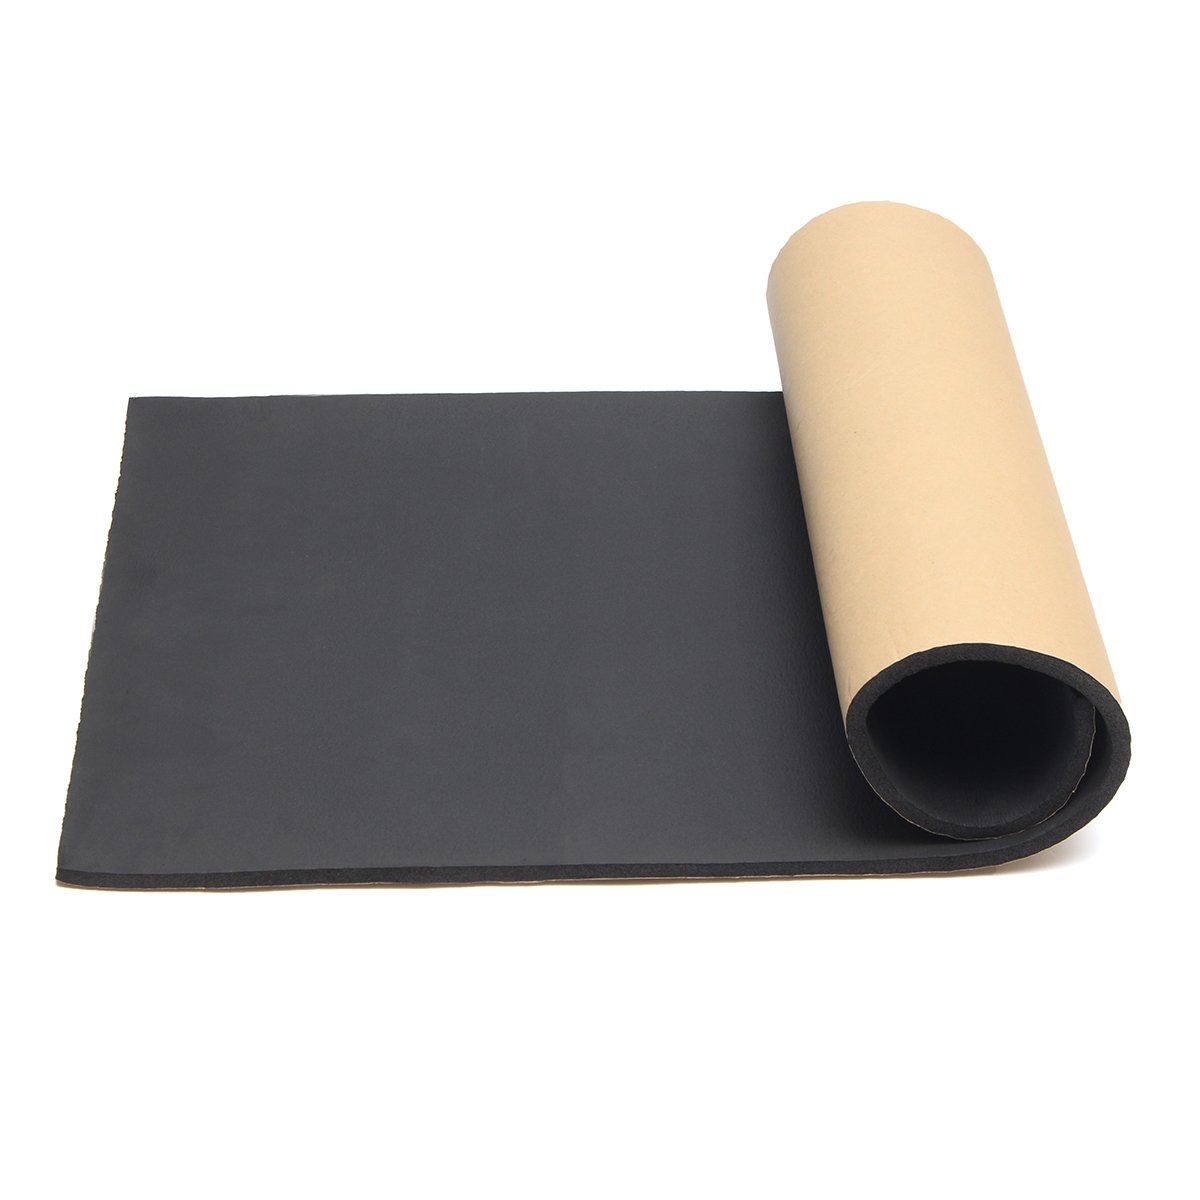 Jeteven 1m x 50cm High Density Foam Rubber Padding Roll Self Closed Cell Foam Waterproof Soundproof Insulation Thermal Foam Car Sound Deadening Mat 1m by Jeteven (Image #1)